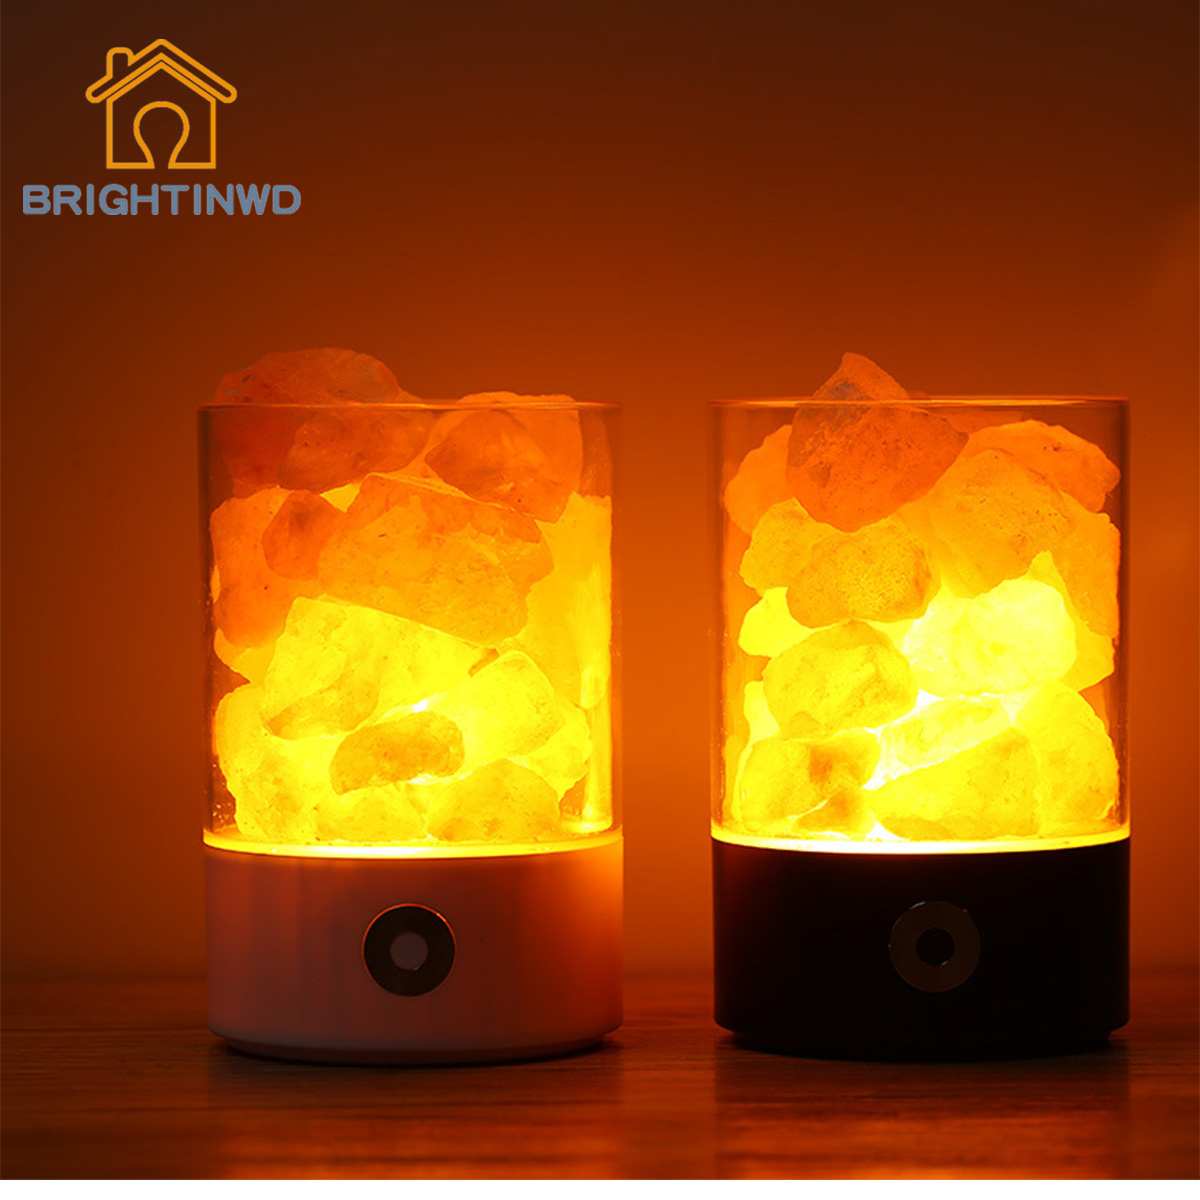 BRIGHTINWD USB Crystal Salt Night Light Himalayan Crystal Salt Lamp Air Purifying Night Light Decorative Colorful Atmosphere